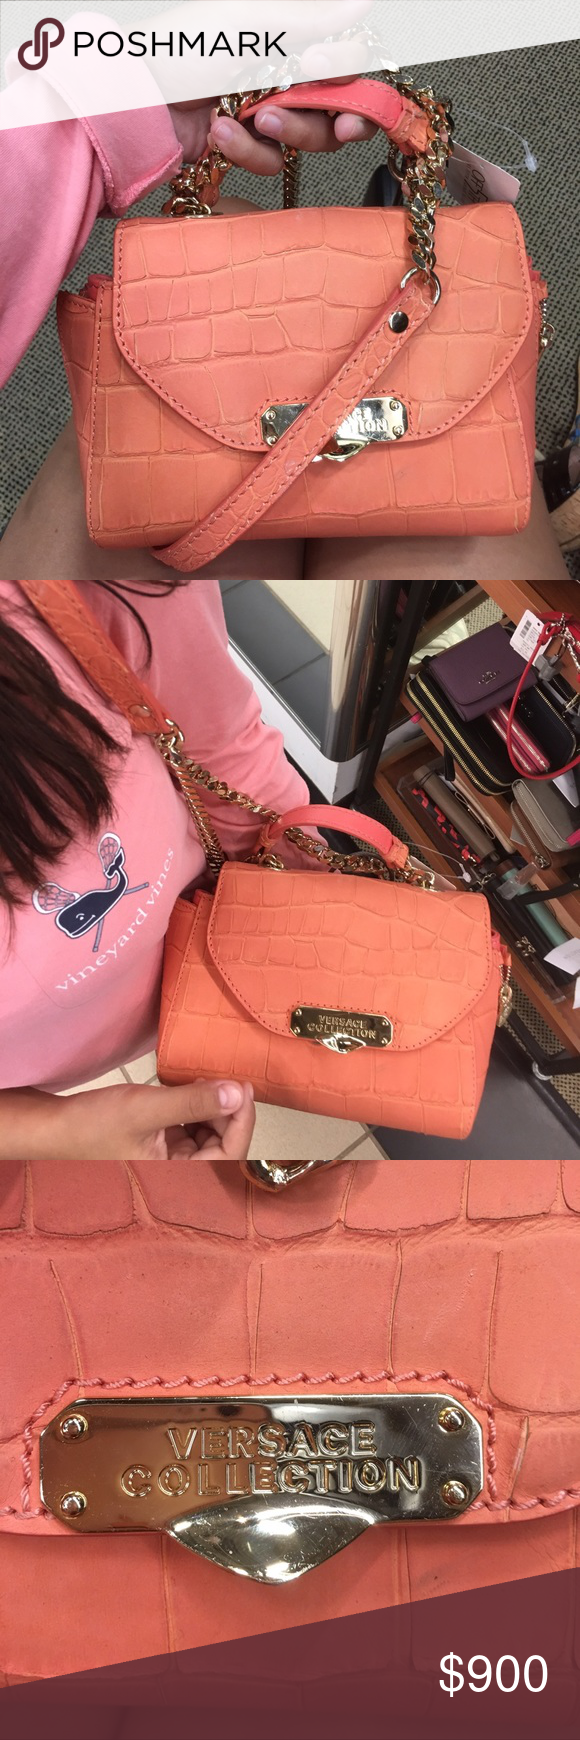 Pink leather Versace cross body bag Brand new Versace Bags Crossbody Bags